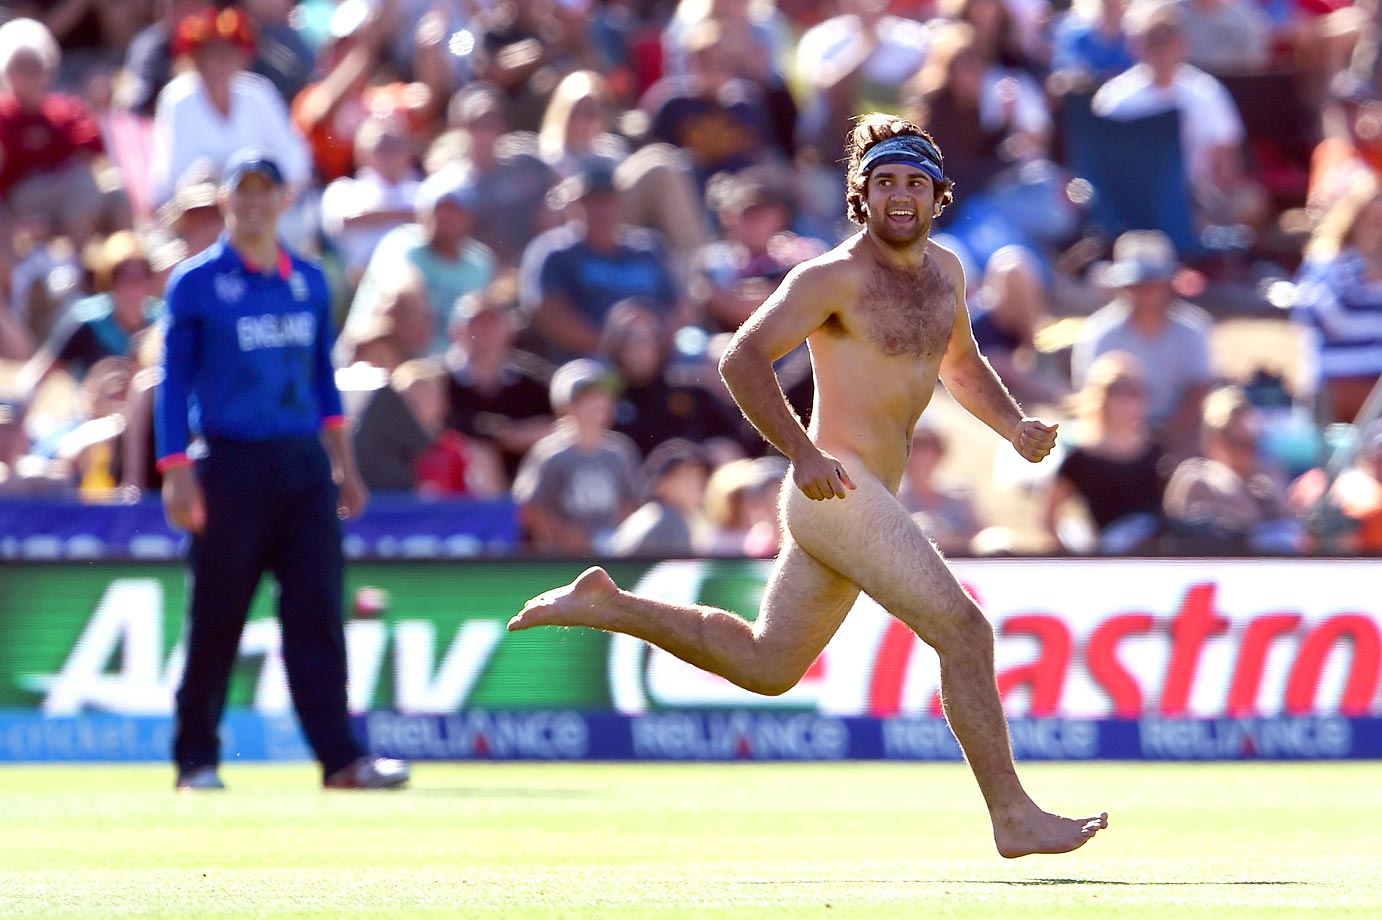 A streaker runs past an England player during the 2015 Cricket World Cup Group A match against Scotland in Christchurch.